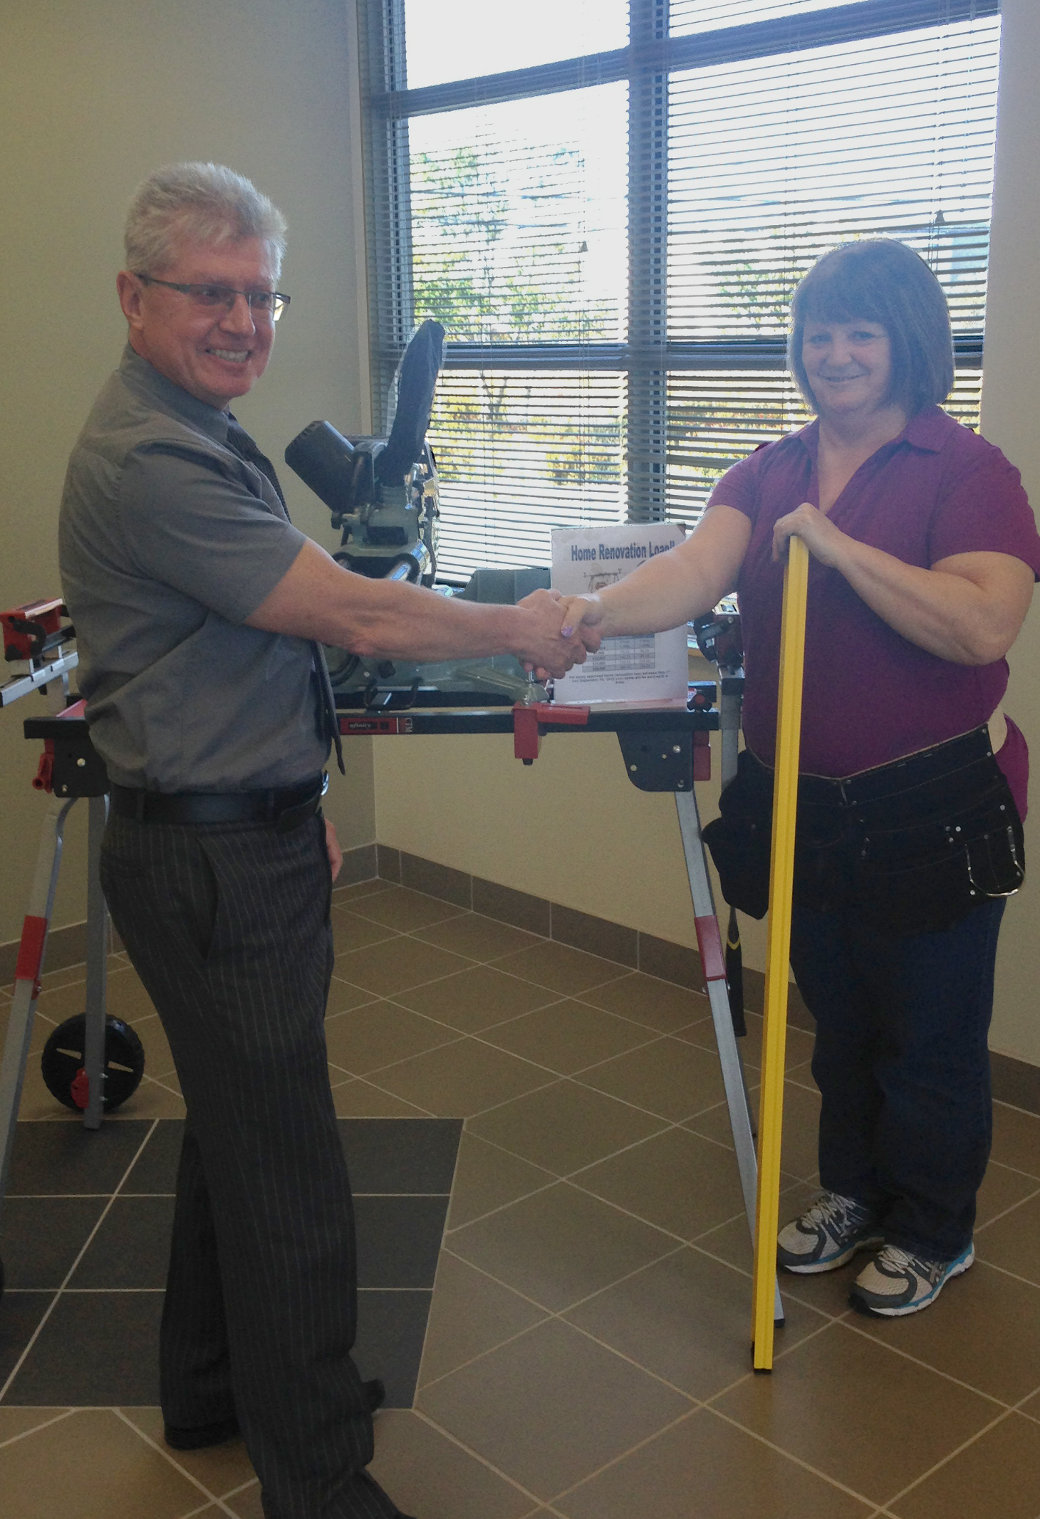 Miss Barbara Carew is the winner of our Home Renovation Campaign that ran from May to September 2016. Brian Quilty, CEO congratulated Barbara on winning the miter saw, table stand and accessories. Congratulations Barbara!